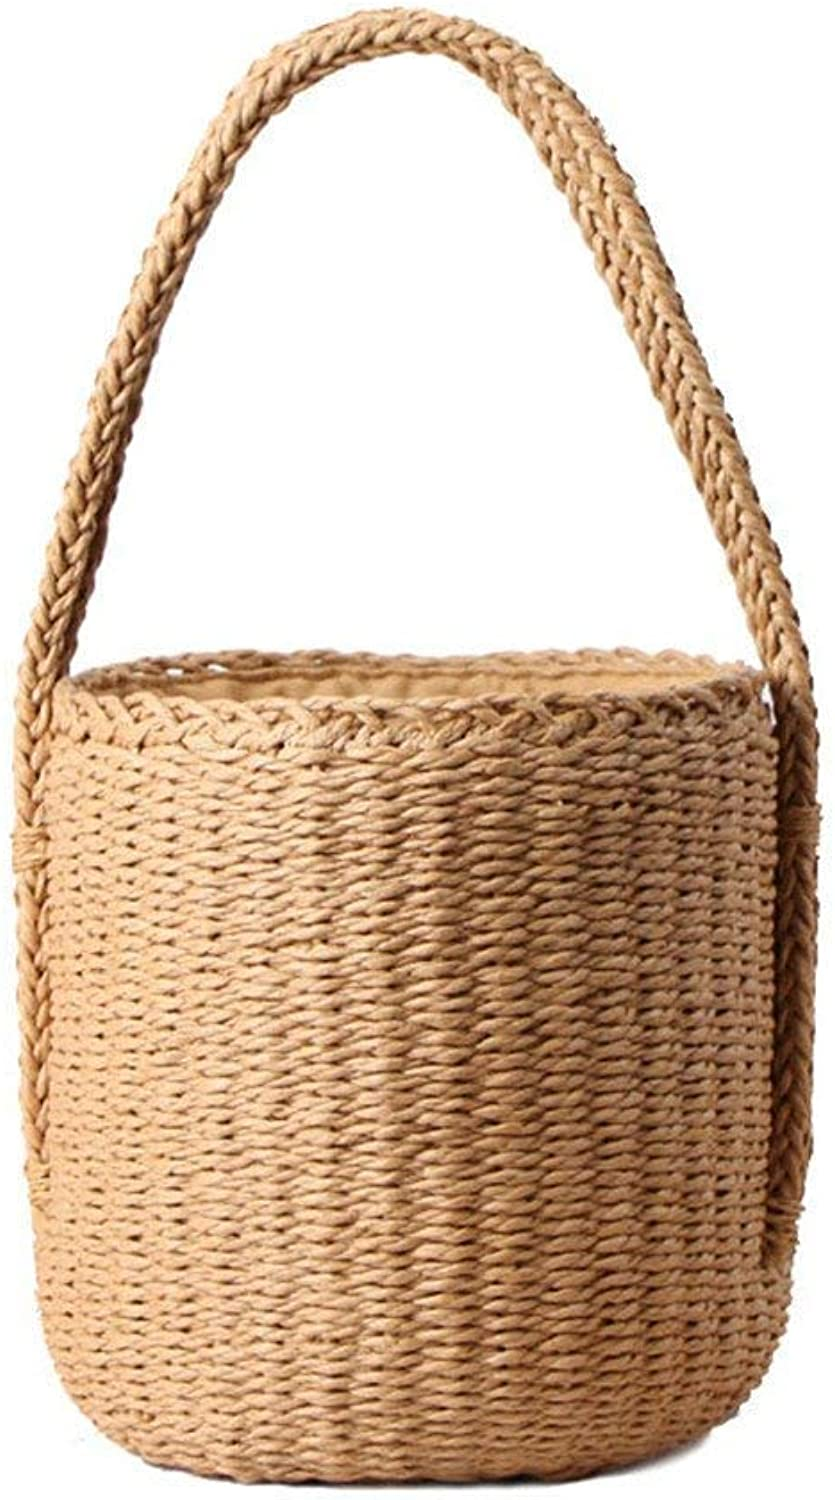 Evening Bag HandWoven Summer Pure Straw Bag Beach Handmade Woven Handbags Causal Shoulder Bags for Women Boho Shopping Tote (color   , Size   ) Party Handbag (color   , Size   )